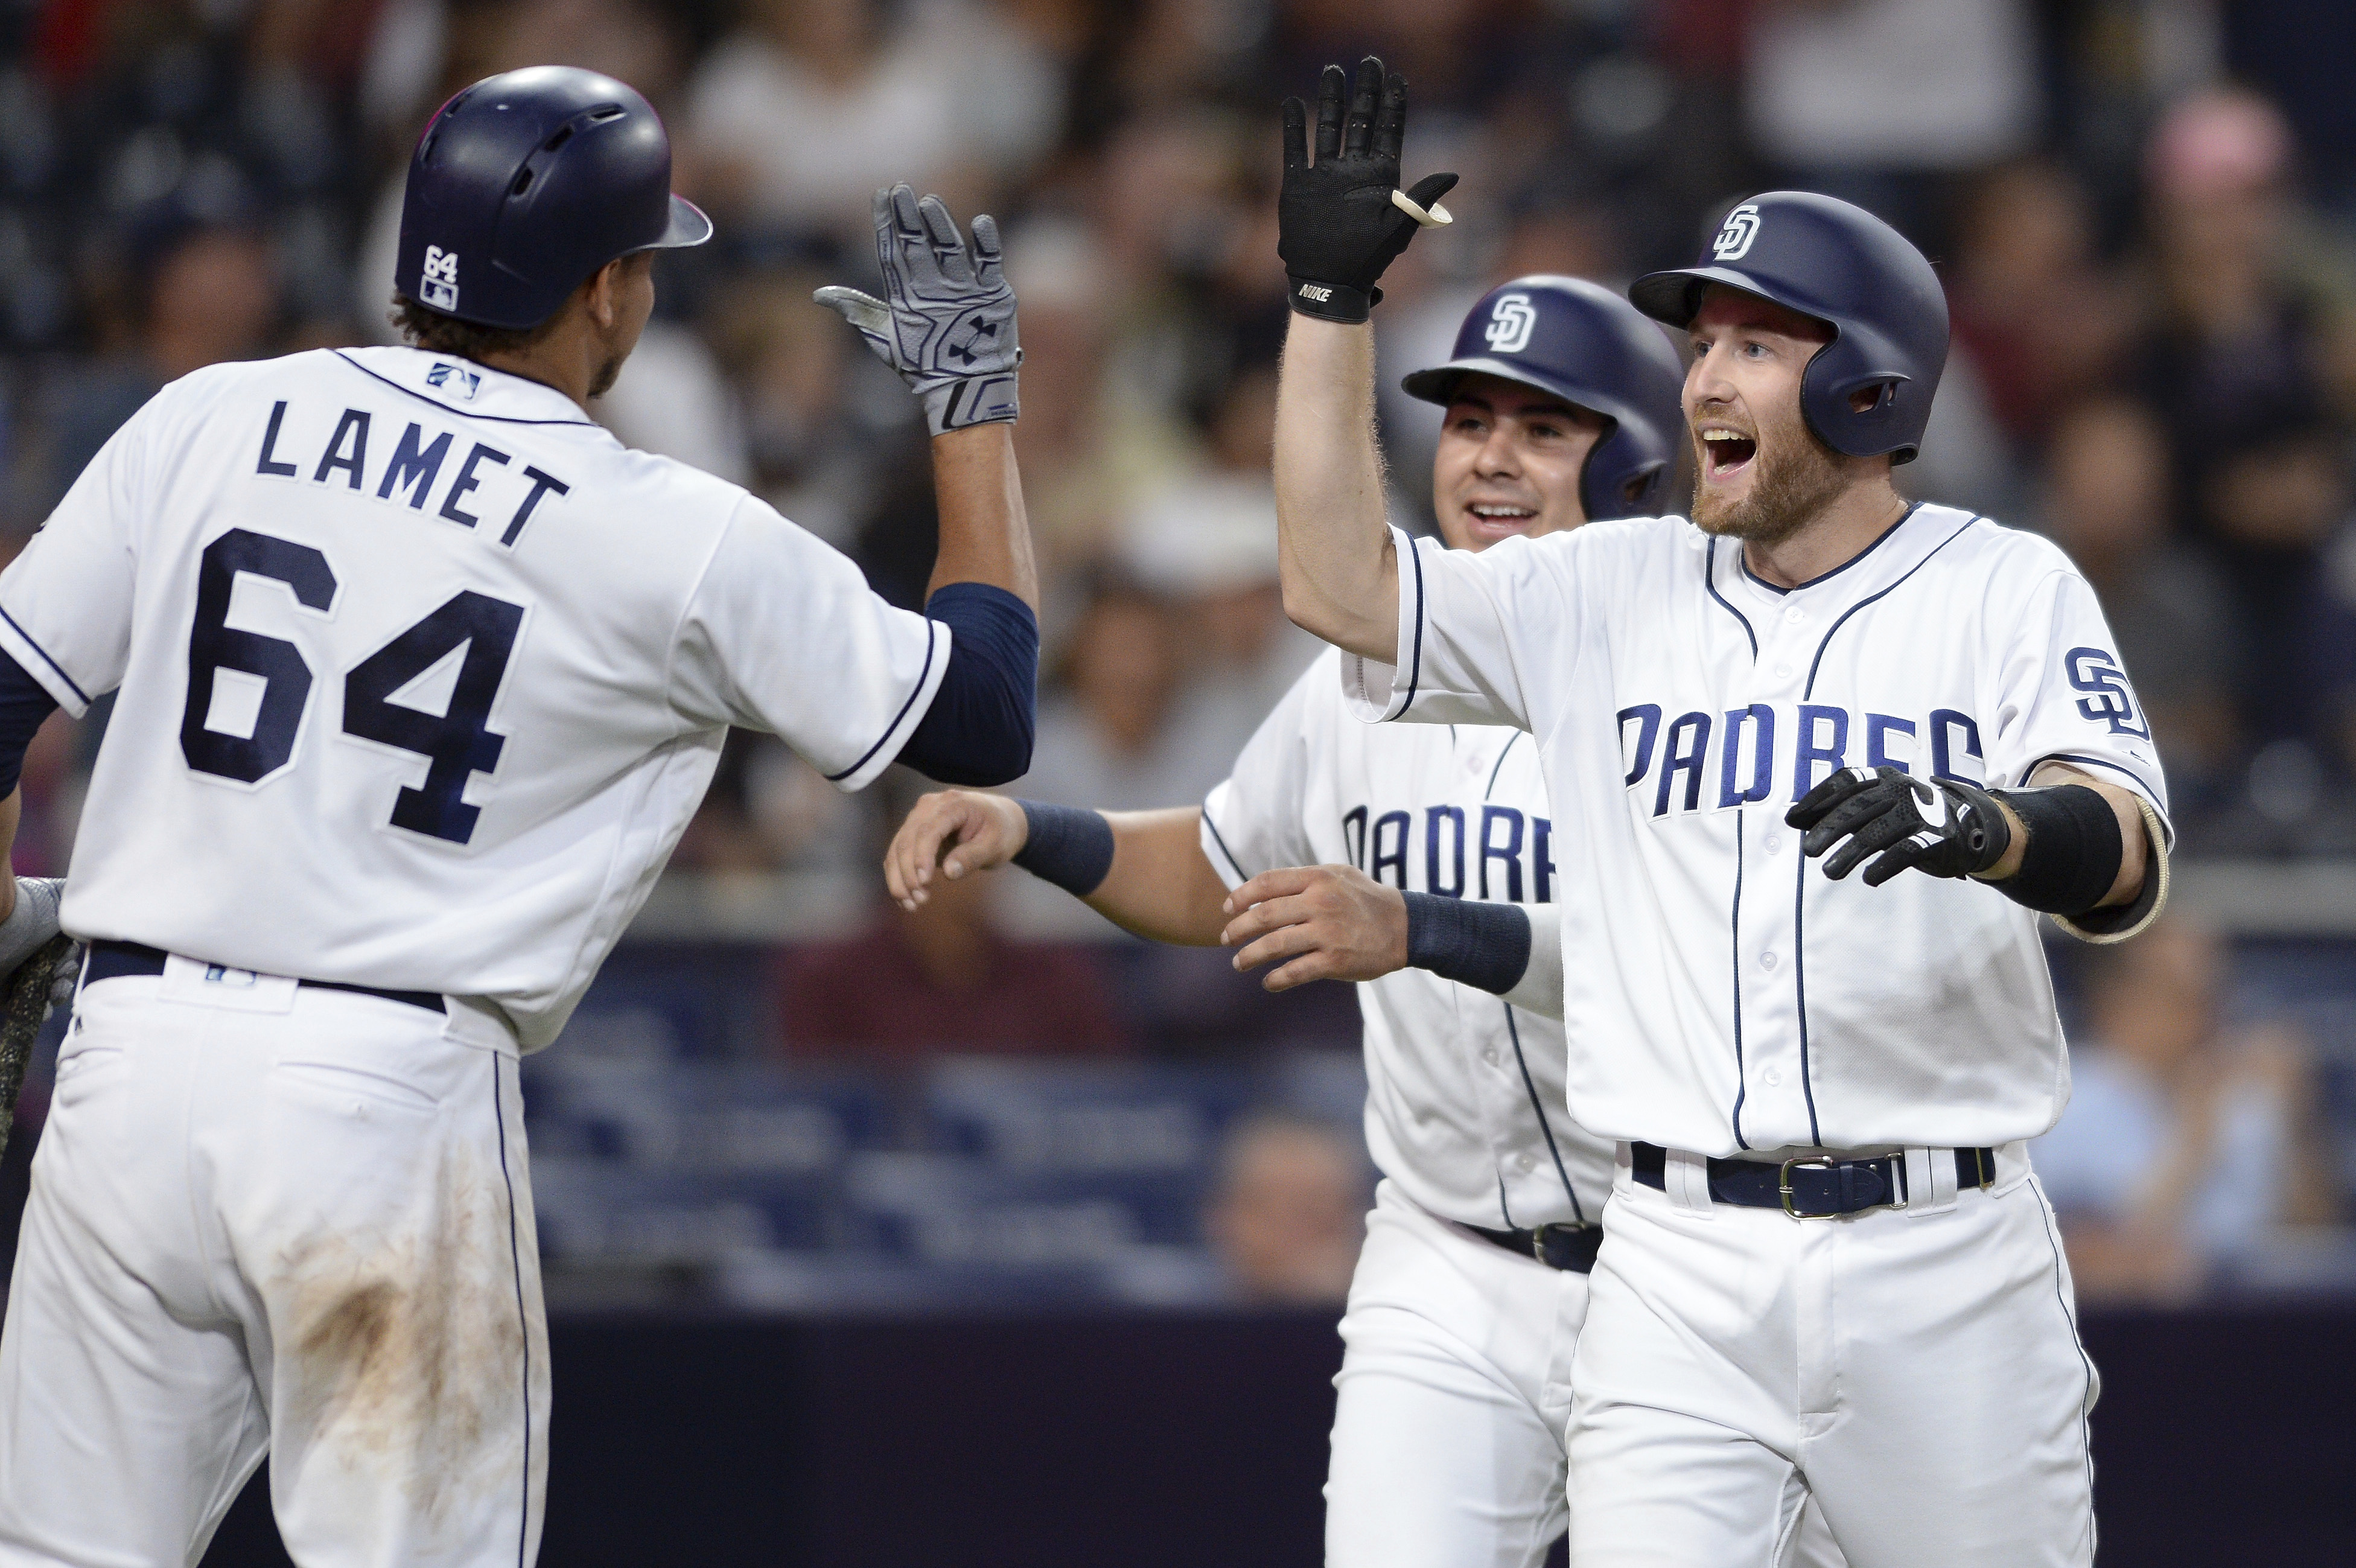 Padres' rookie Rocky Gale (far right) is congratulated at home plate after hitting his first career home run against Arizona. (AP)